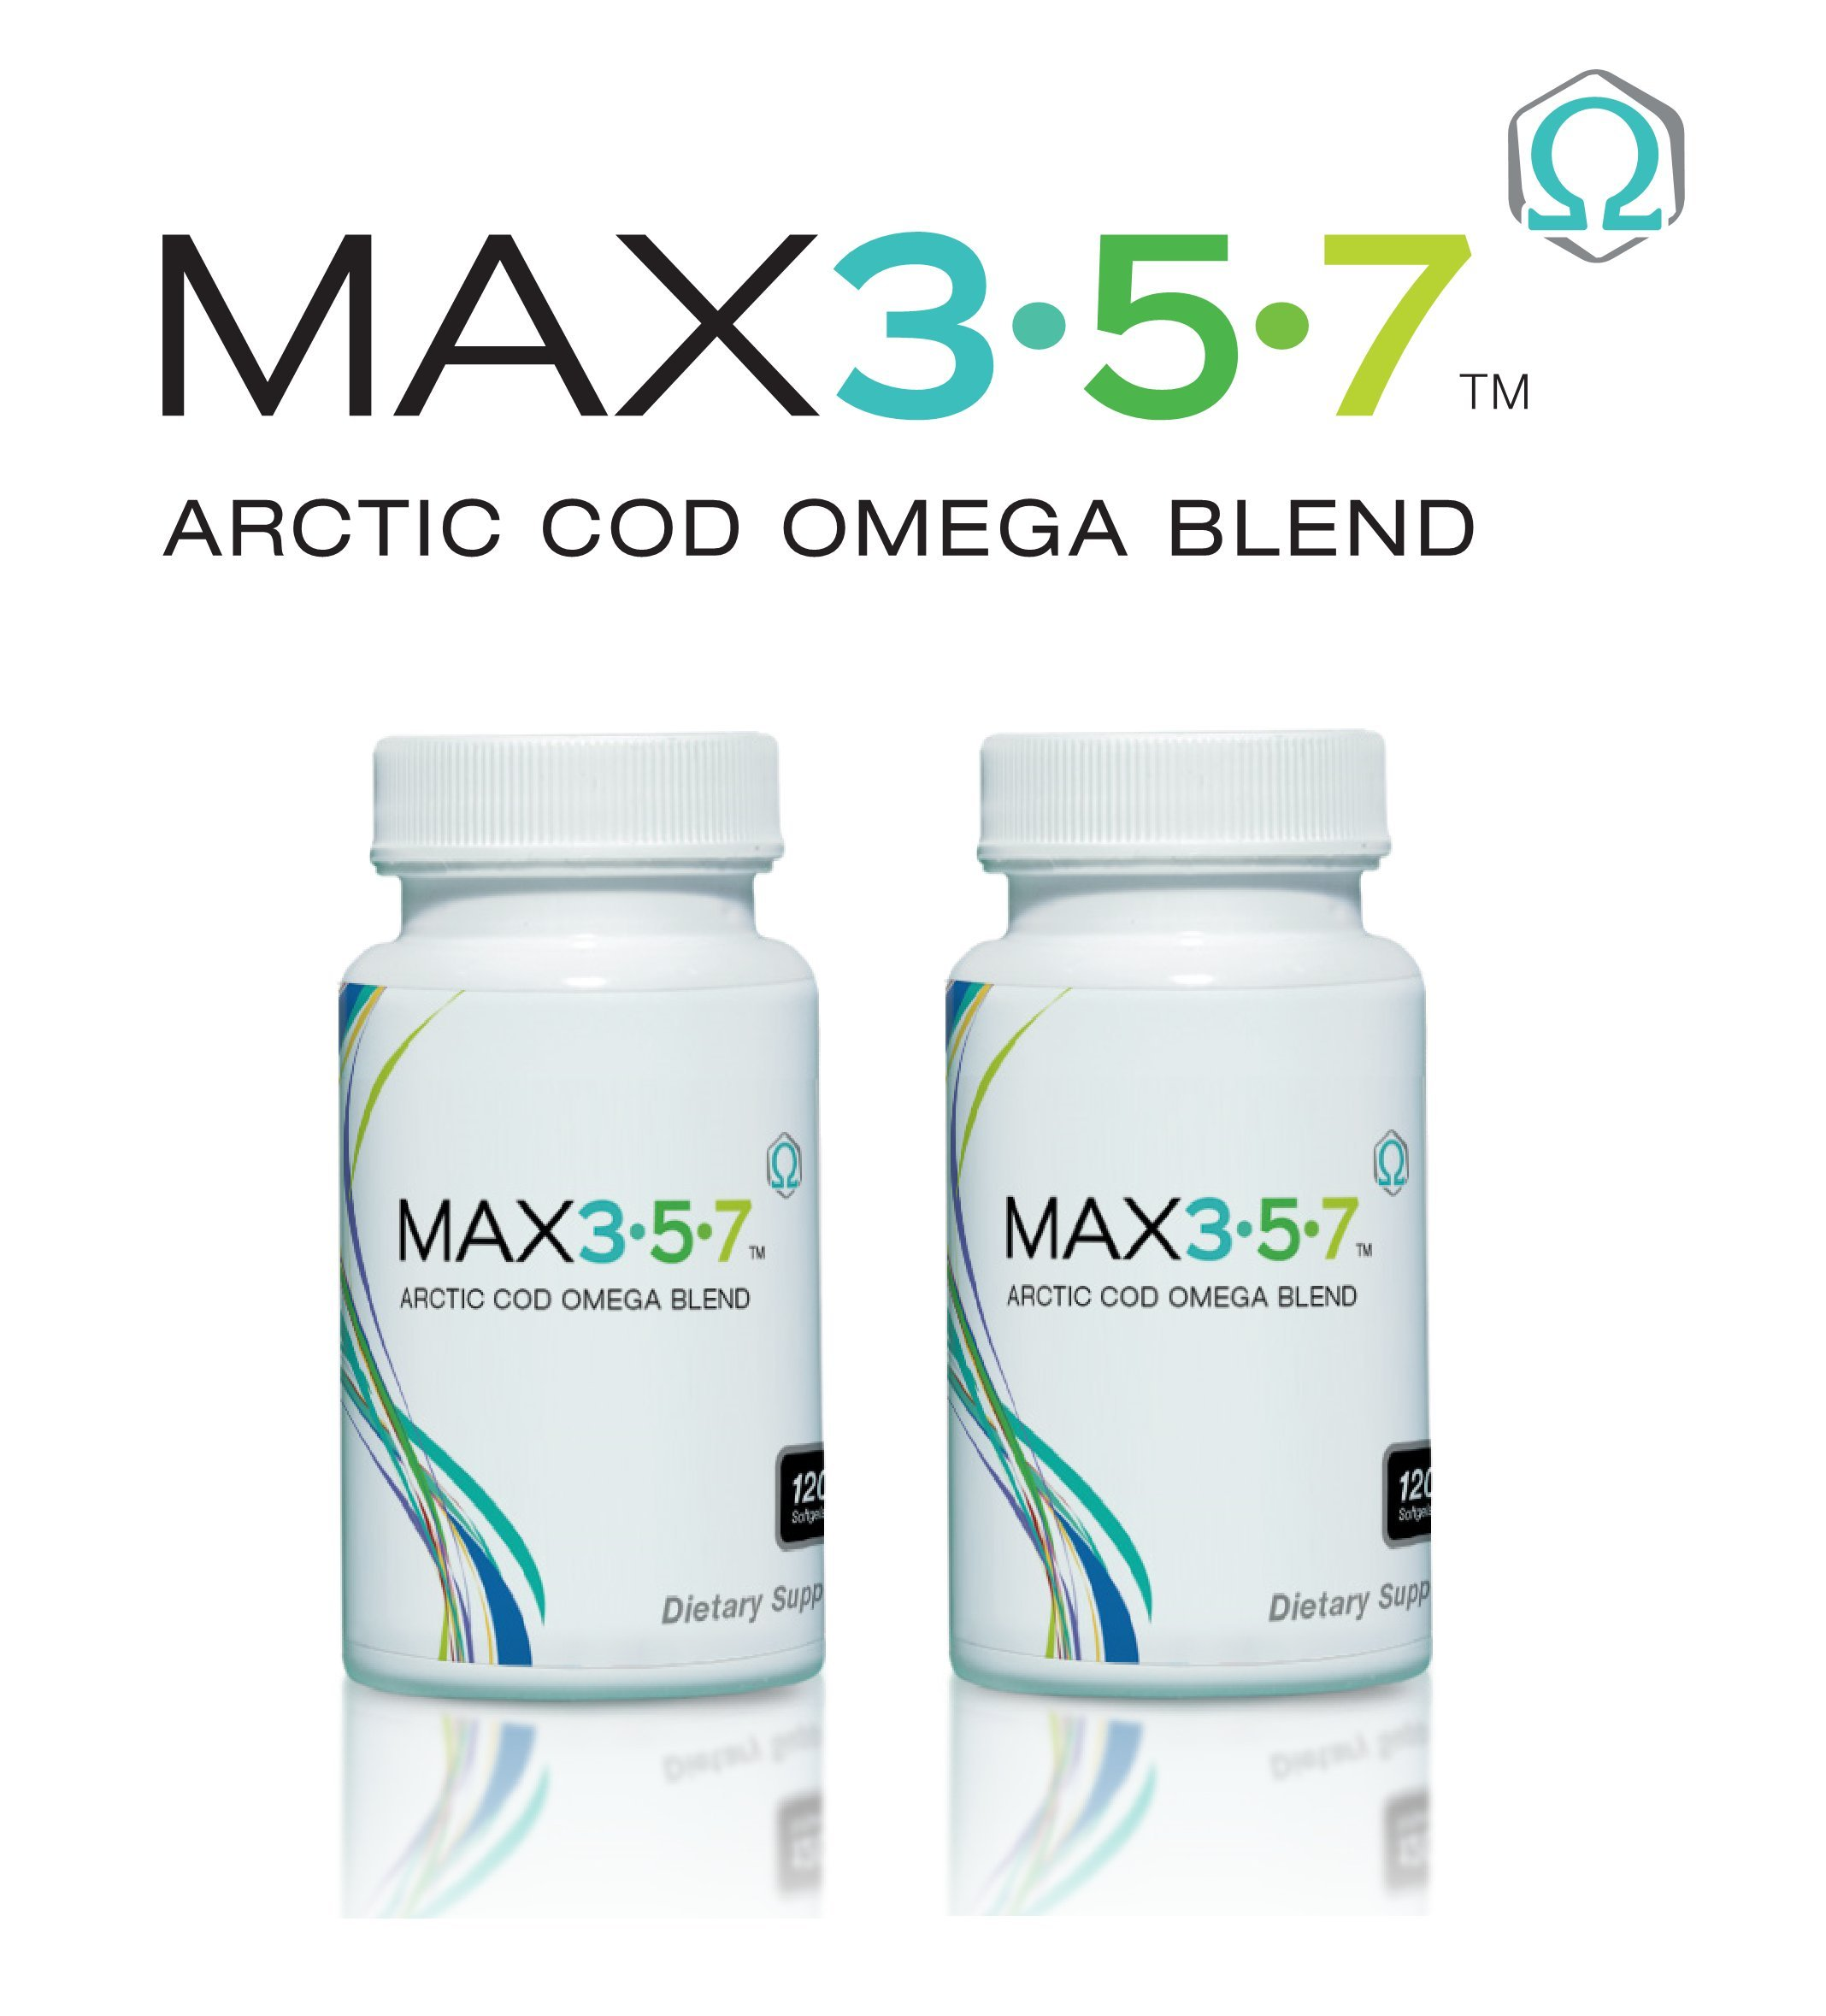 Max 3-5-7, Artic Cod Omega Blend, 120 Softgels, 30 Servings (2 Pack)